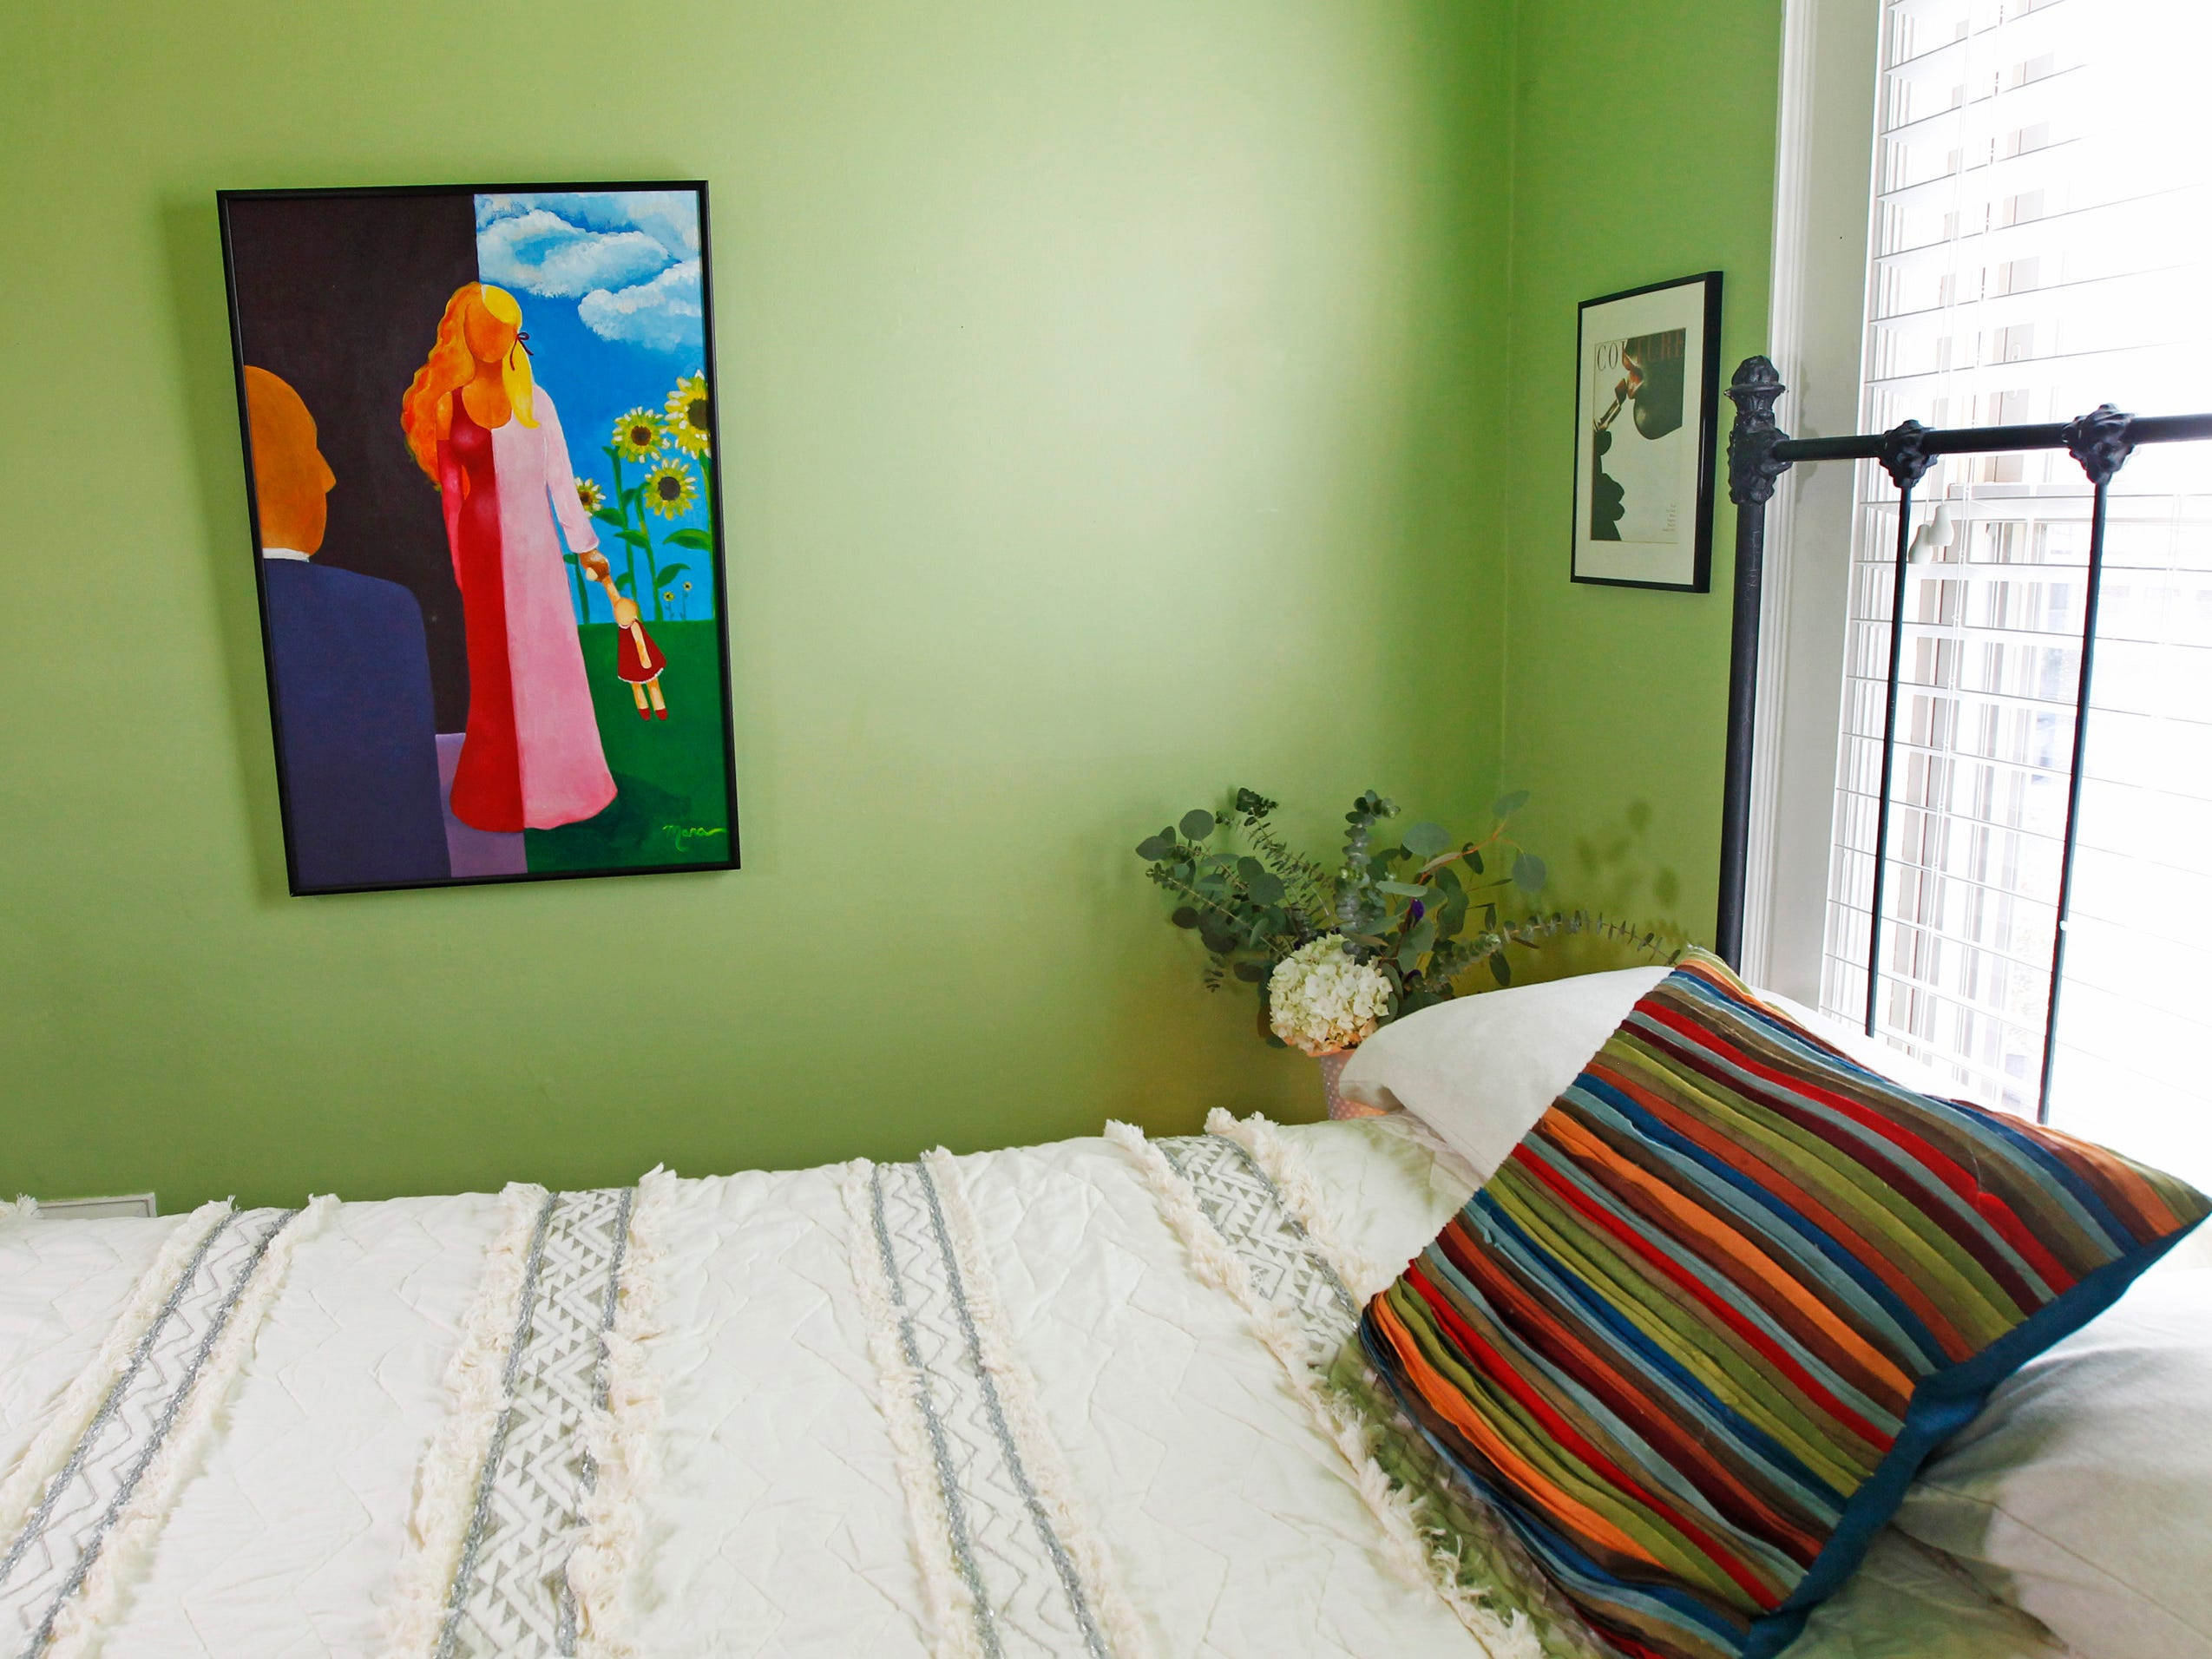 The guest bedroom has colorful walls that provide a bright background for the artwork of homeowner Mara Duckens.